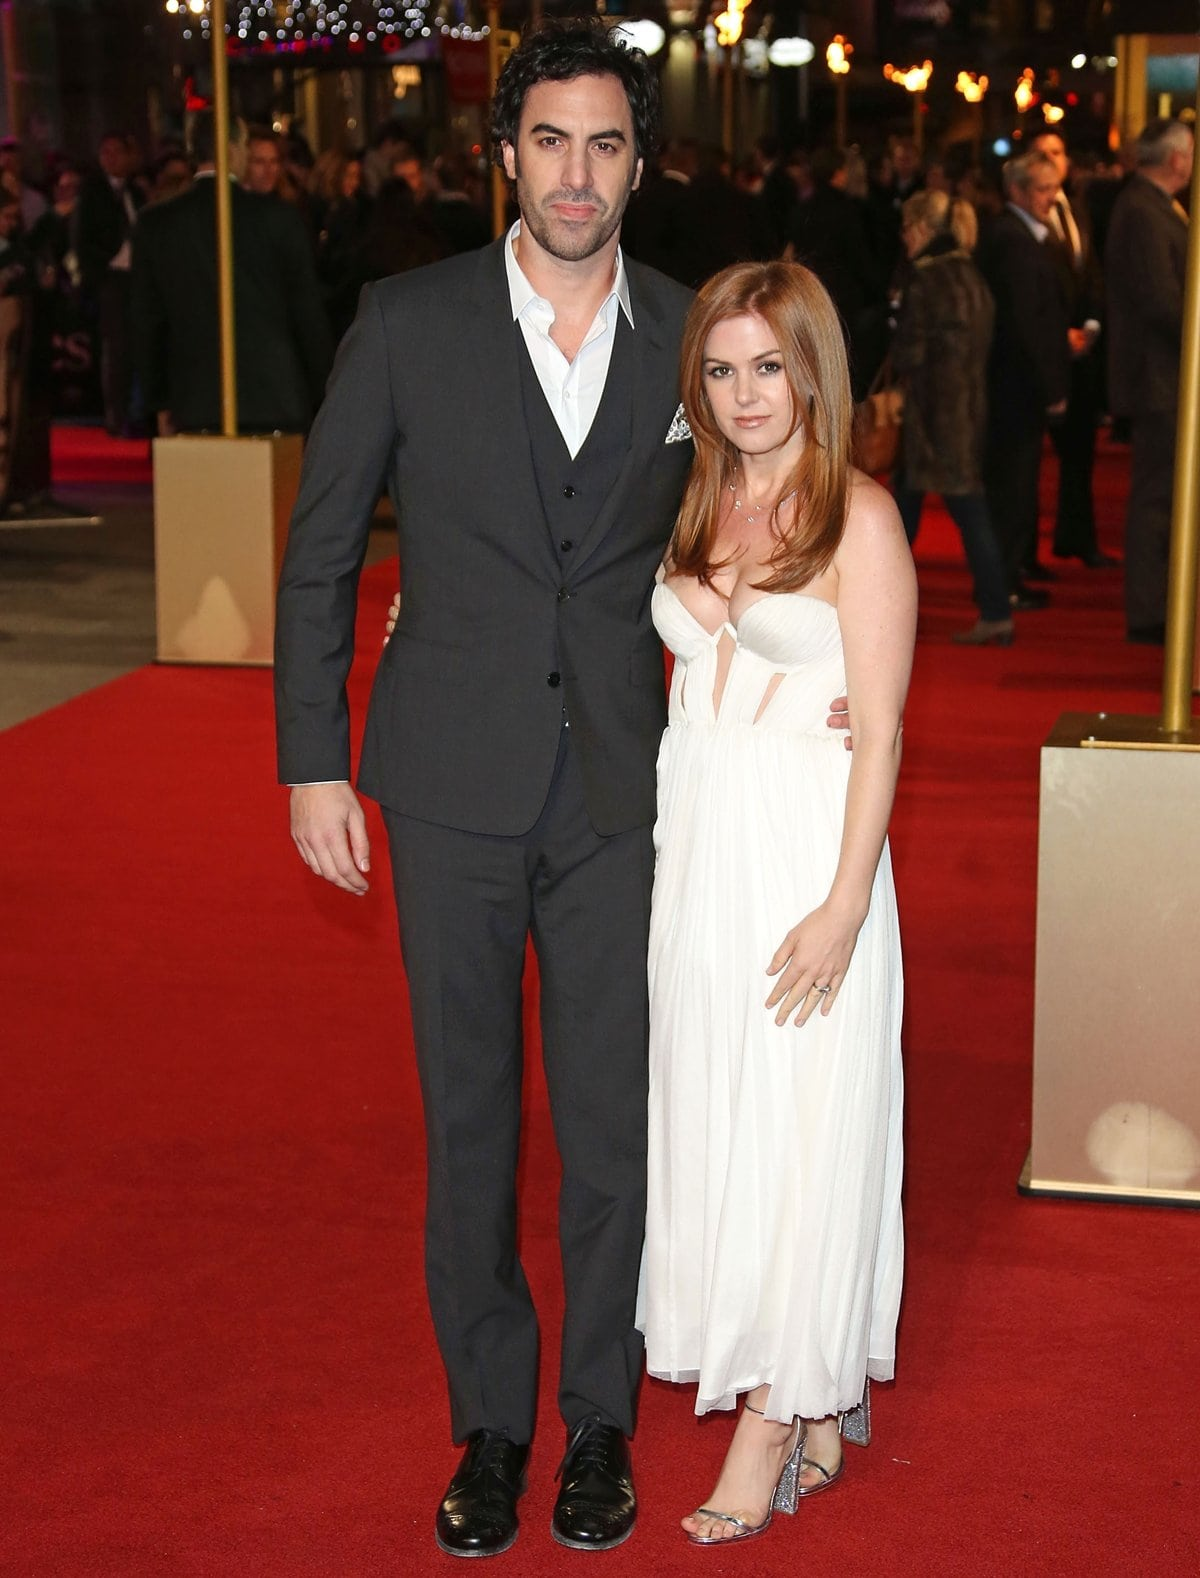 Sacha Baron Cohen and Isla Fisher met in 2001 at a party in Sydney, Australia